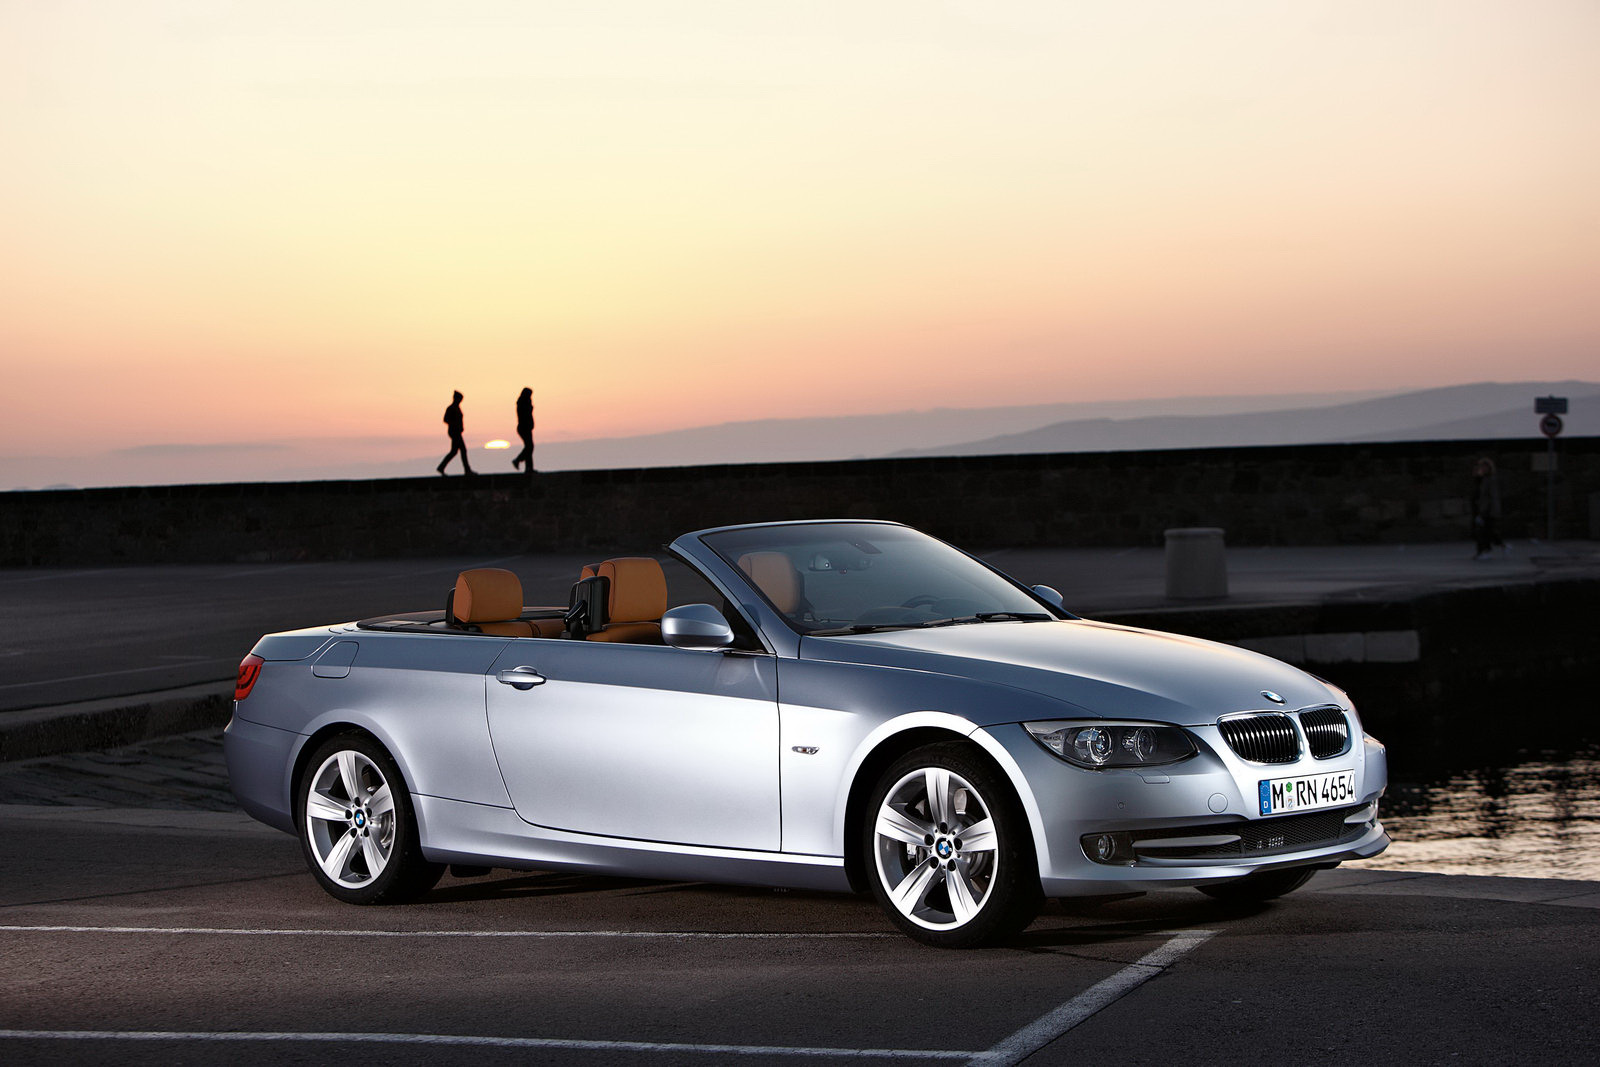 Bmw Lifestyle World 2011 335i Xdrive Convertible Metallic